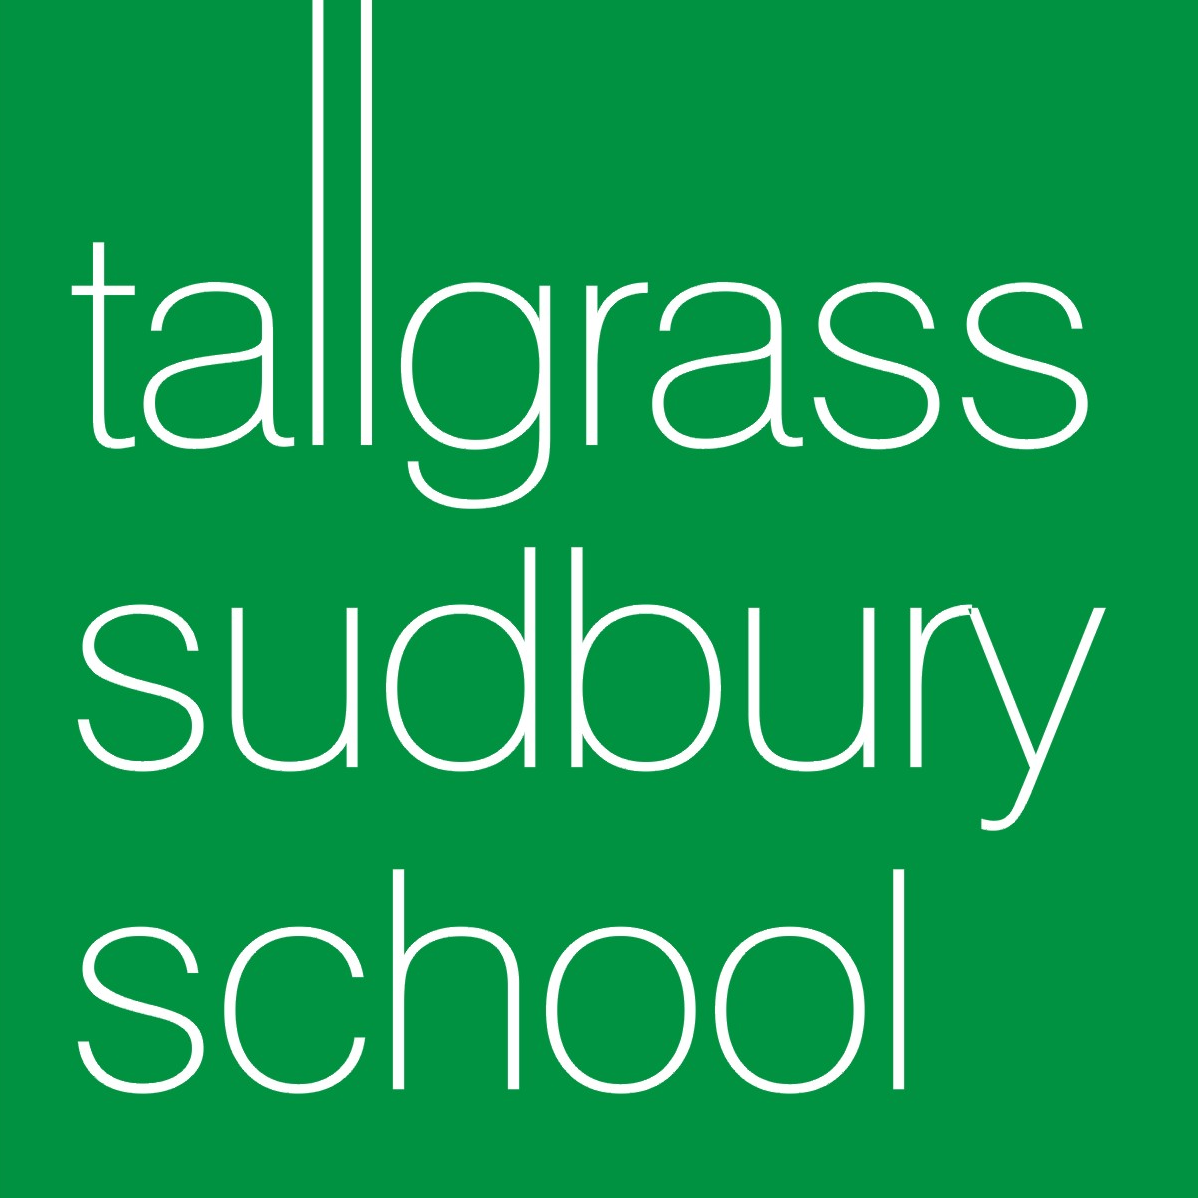 Tallgrass Sudbury School | Because Life Is Not Standardized